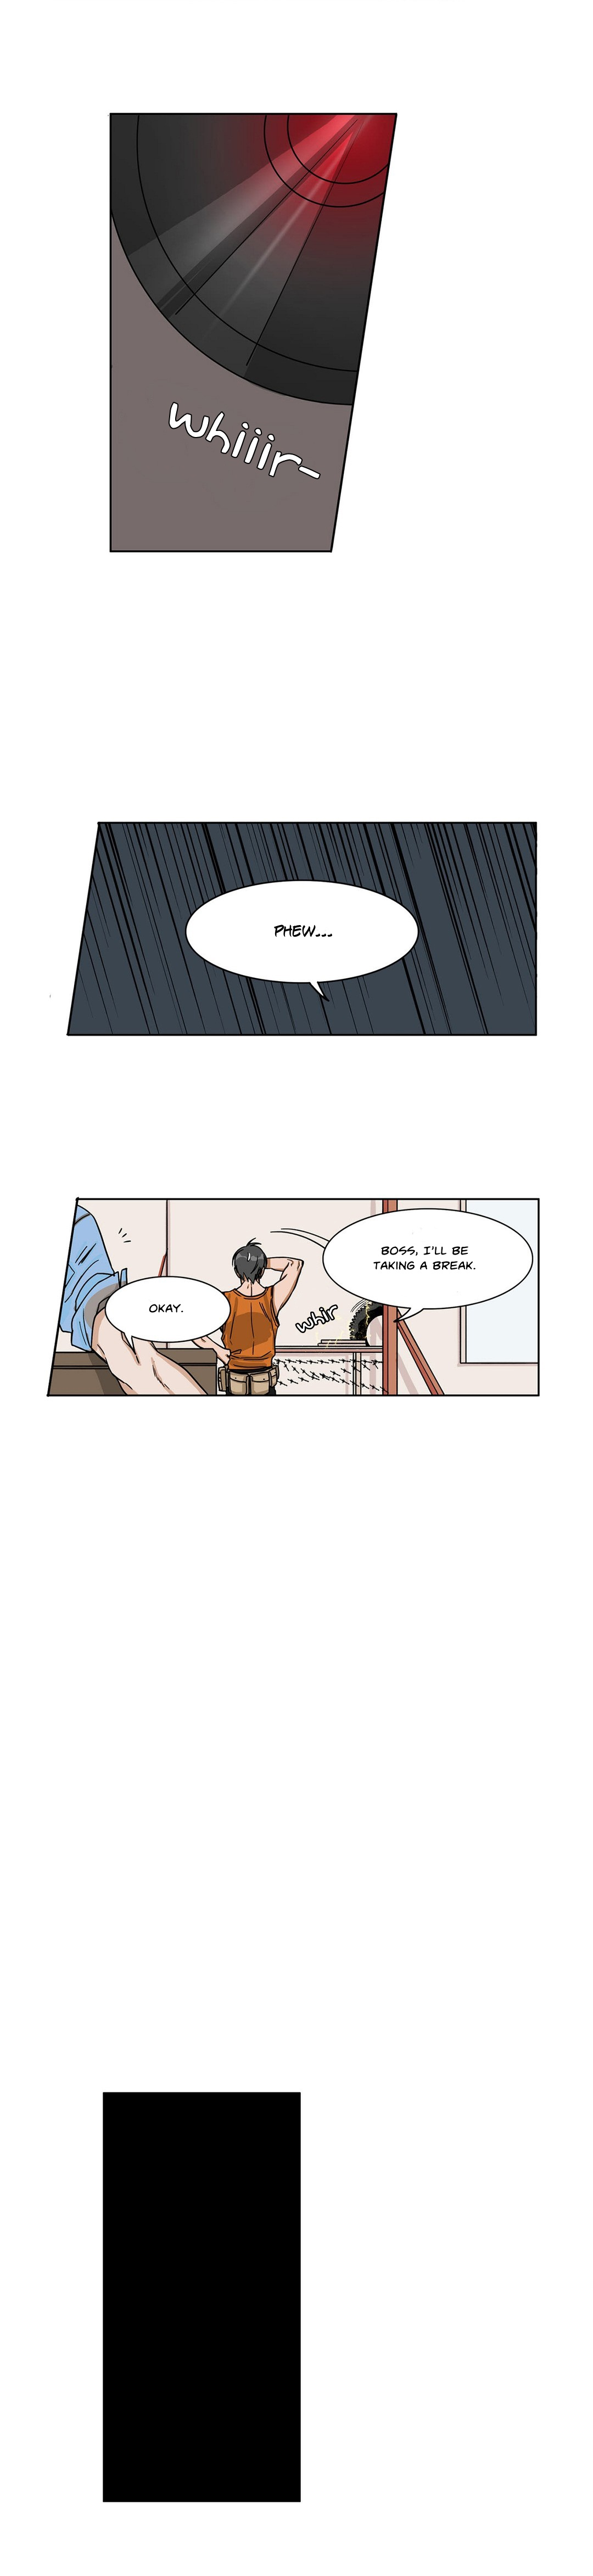 Undercover - Chapter 4